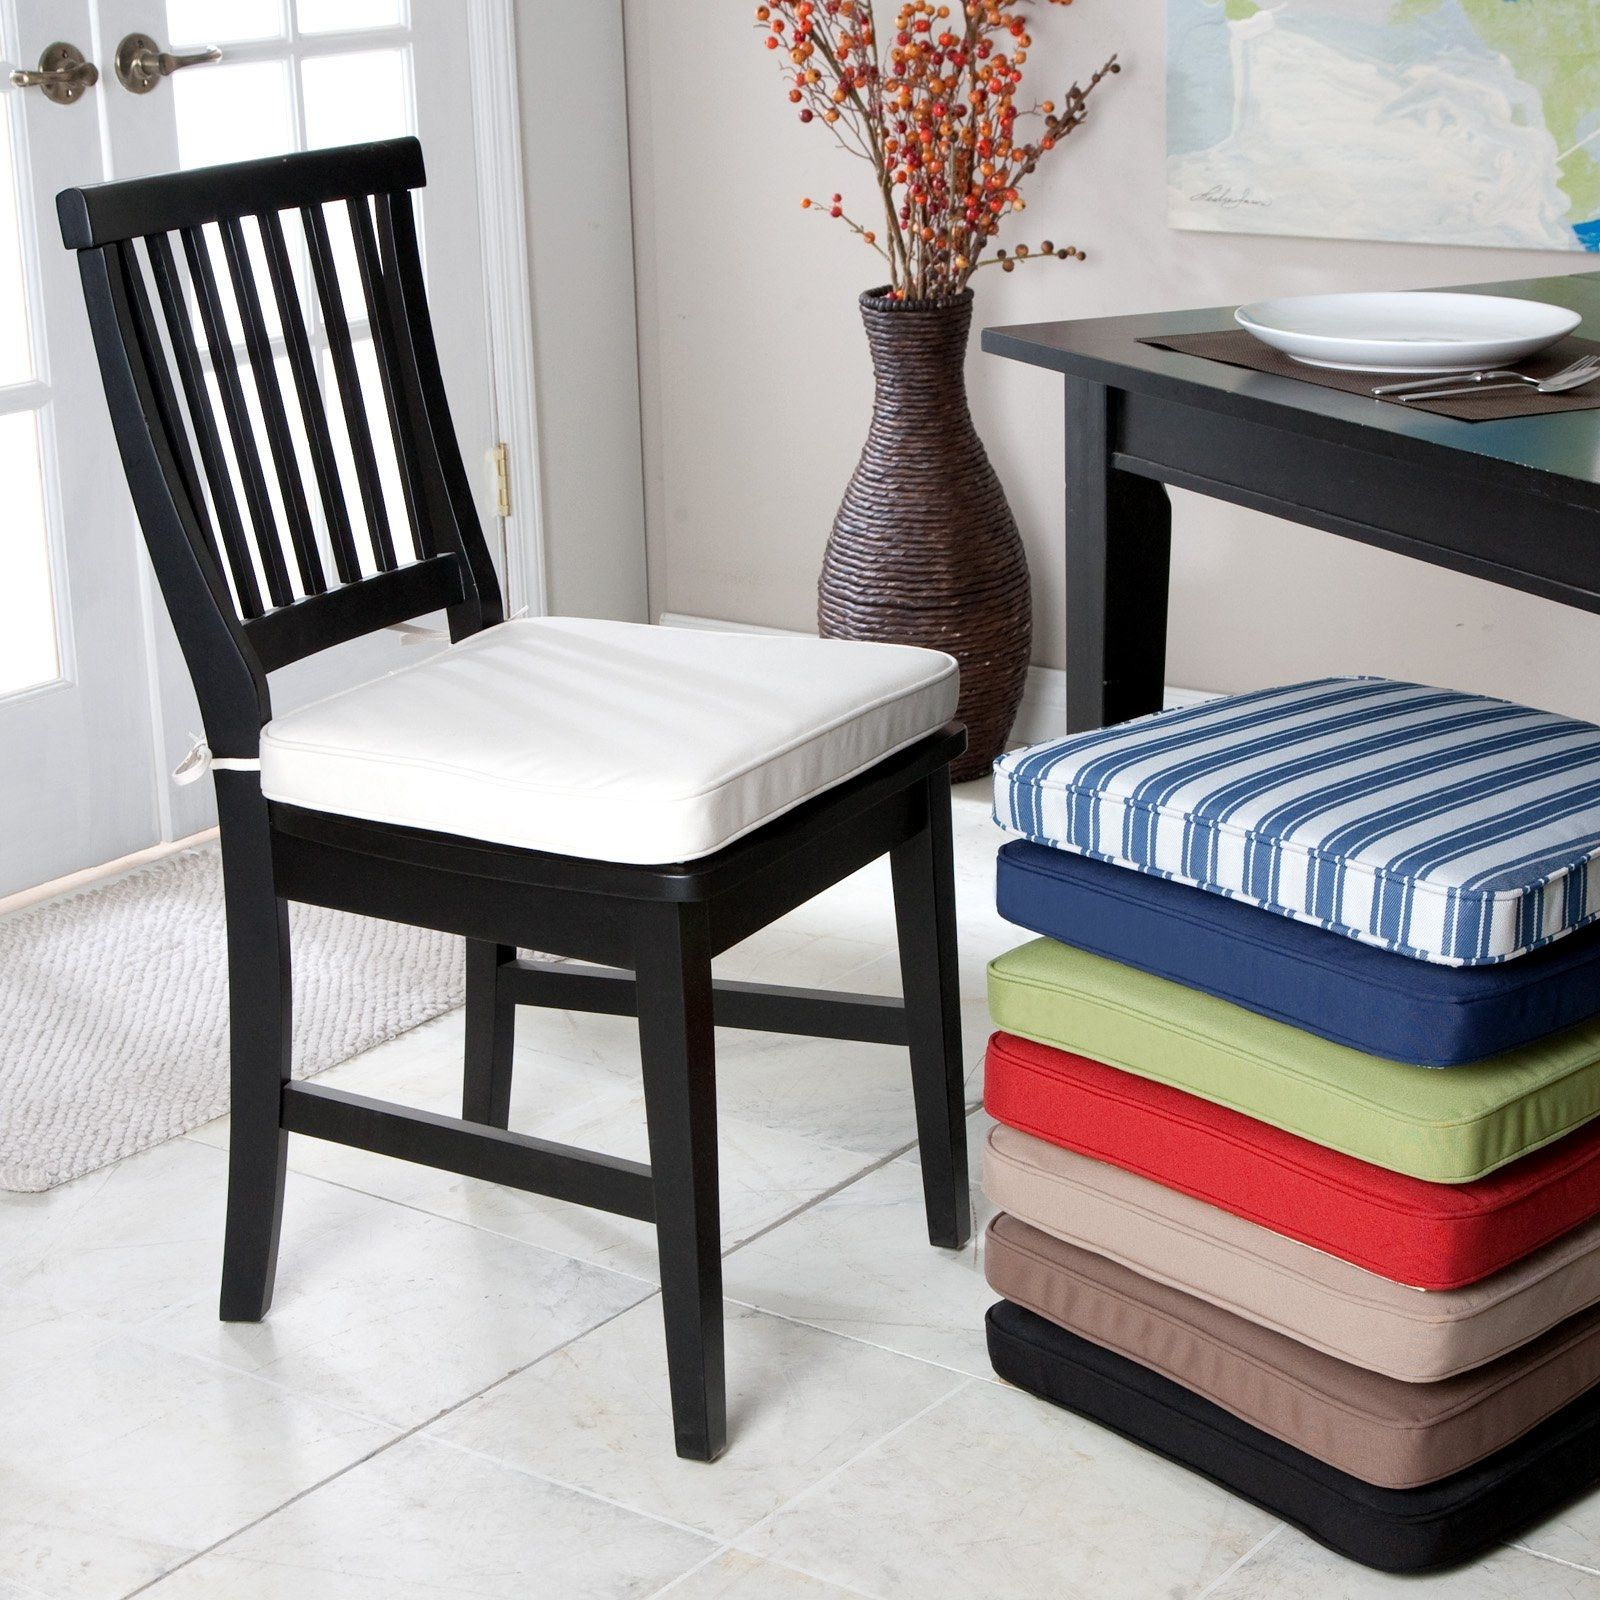 Padded seat covers for kitchen chairs